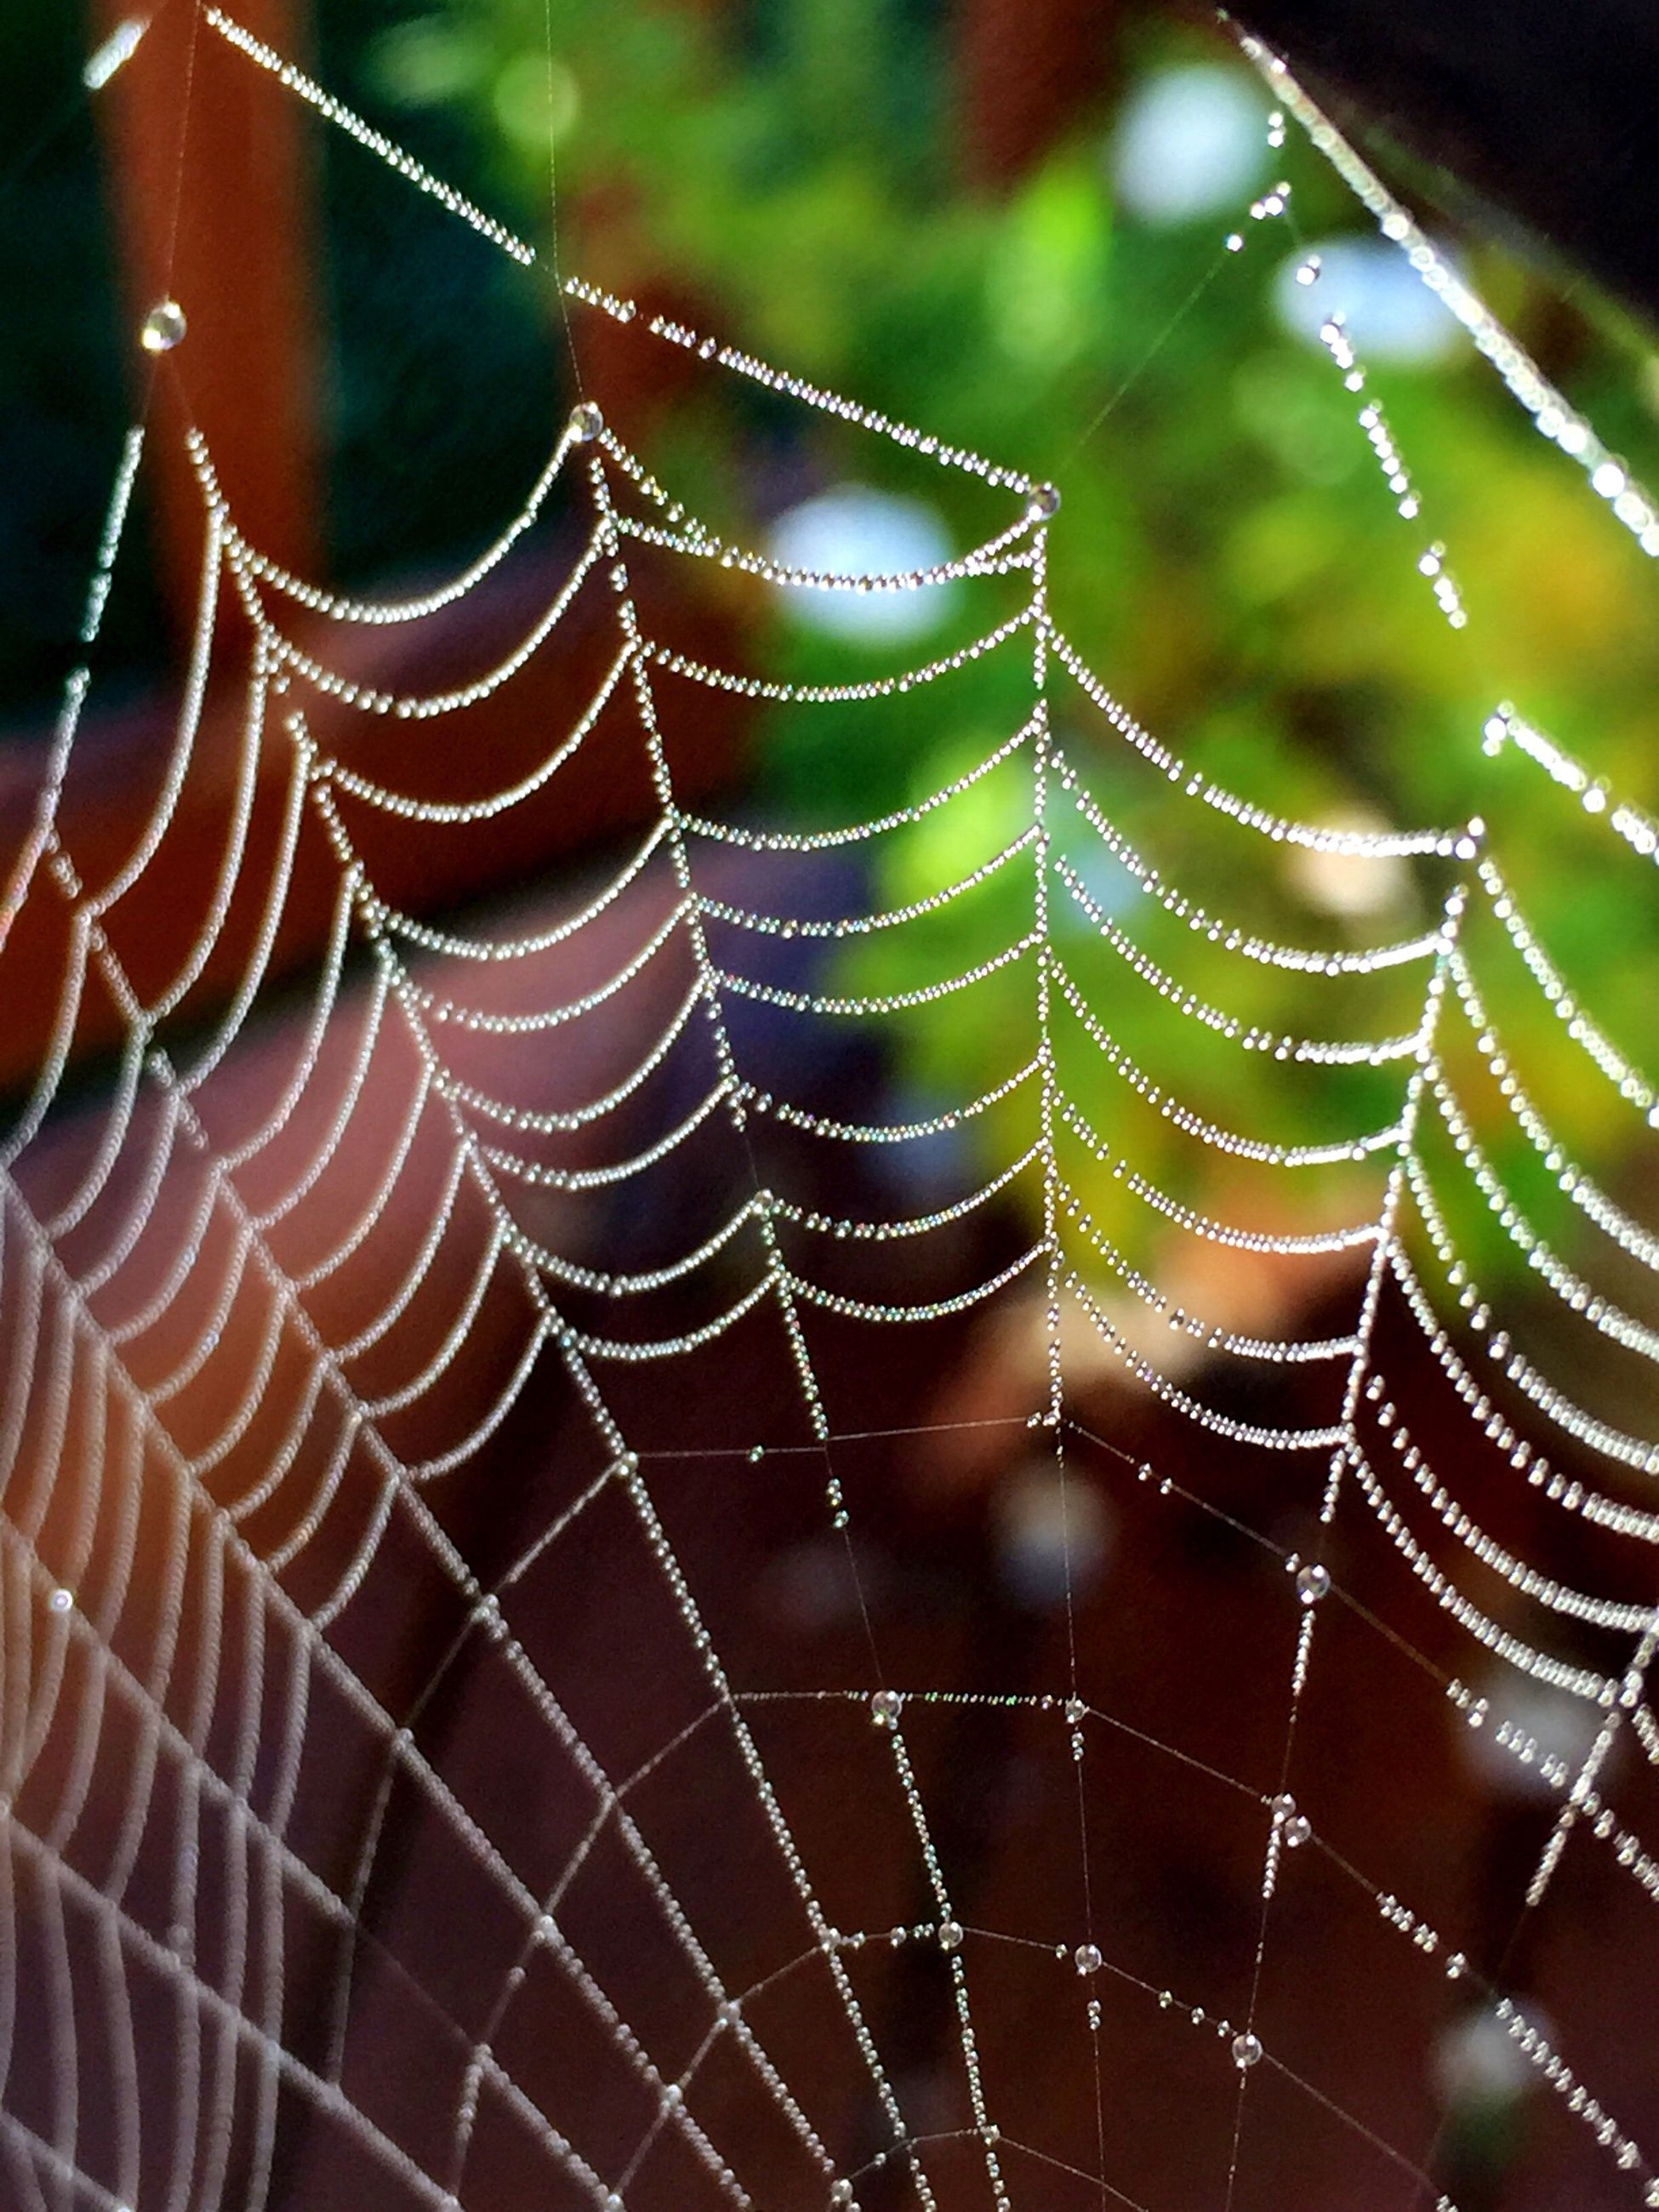 close-up, spider web, drop, natural pattern, fragility, wet, water, focus on foreground, nature, detail, dew, beauty in nature, complexity, growth, green color, plant, freshness, day, repetition, animal markings, outdoors, intricacy, full frame, tranquility